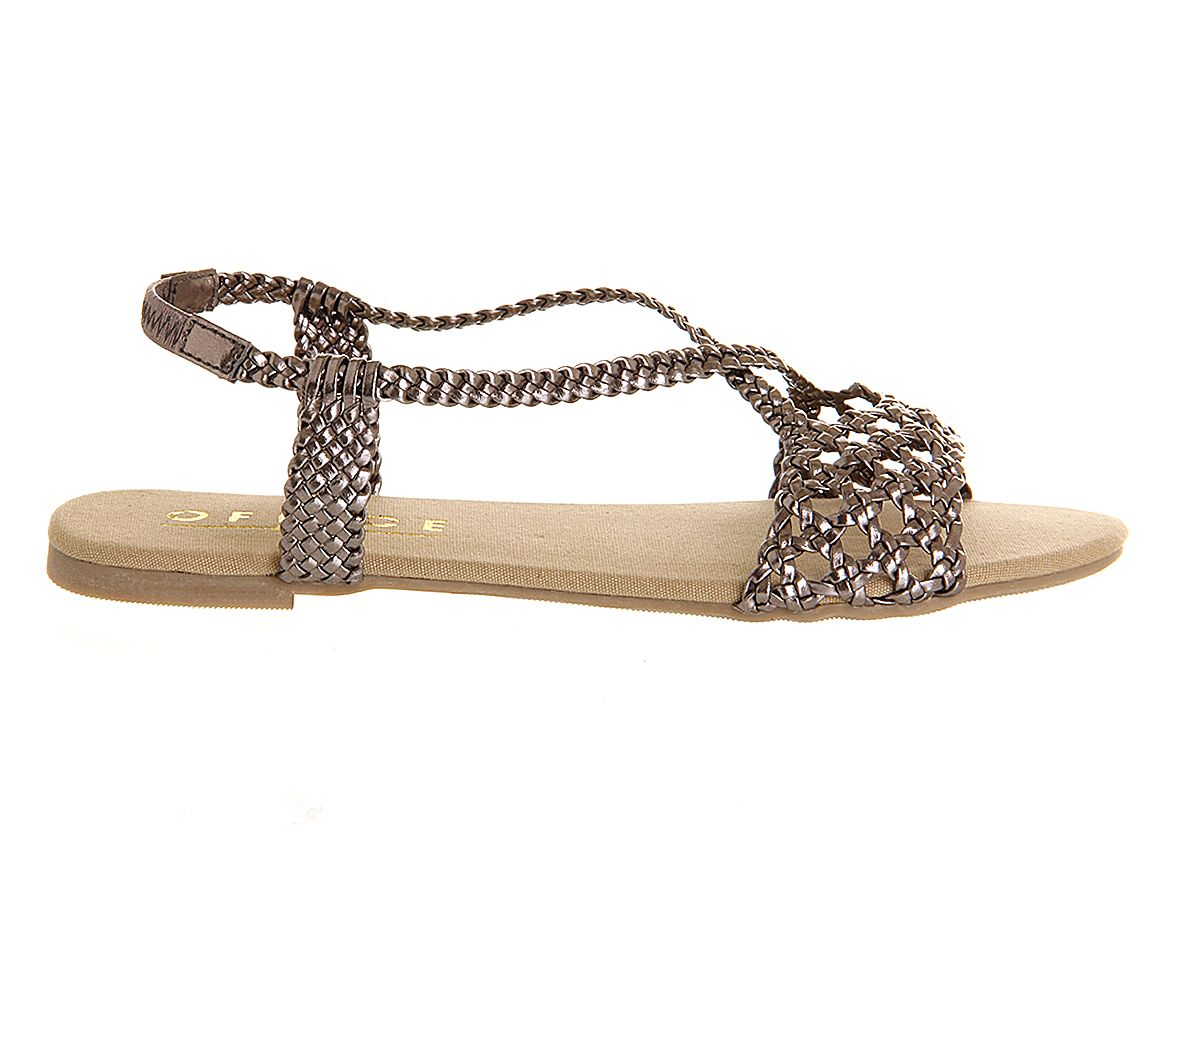 Hades weave open toe flat buckle sandals